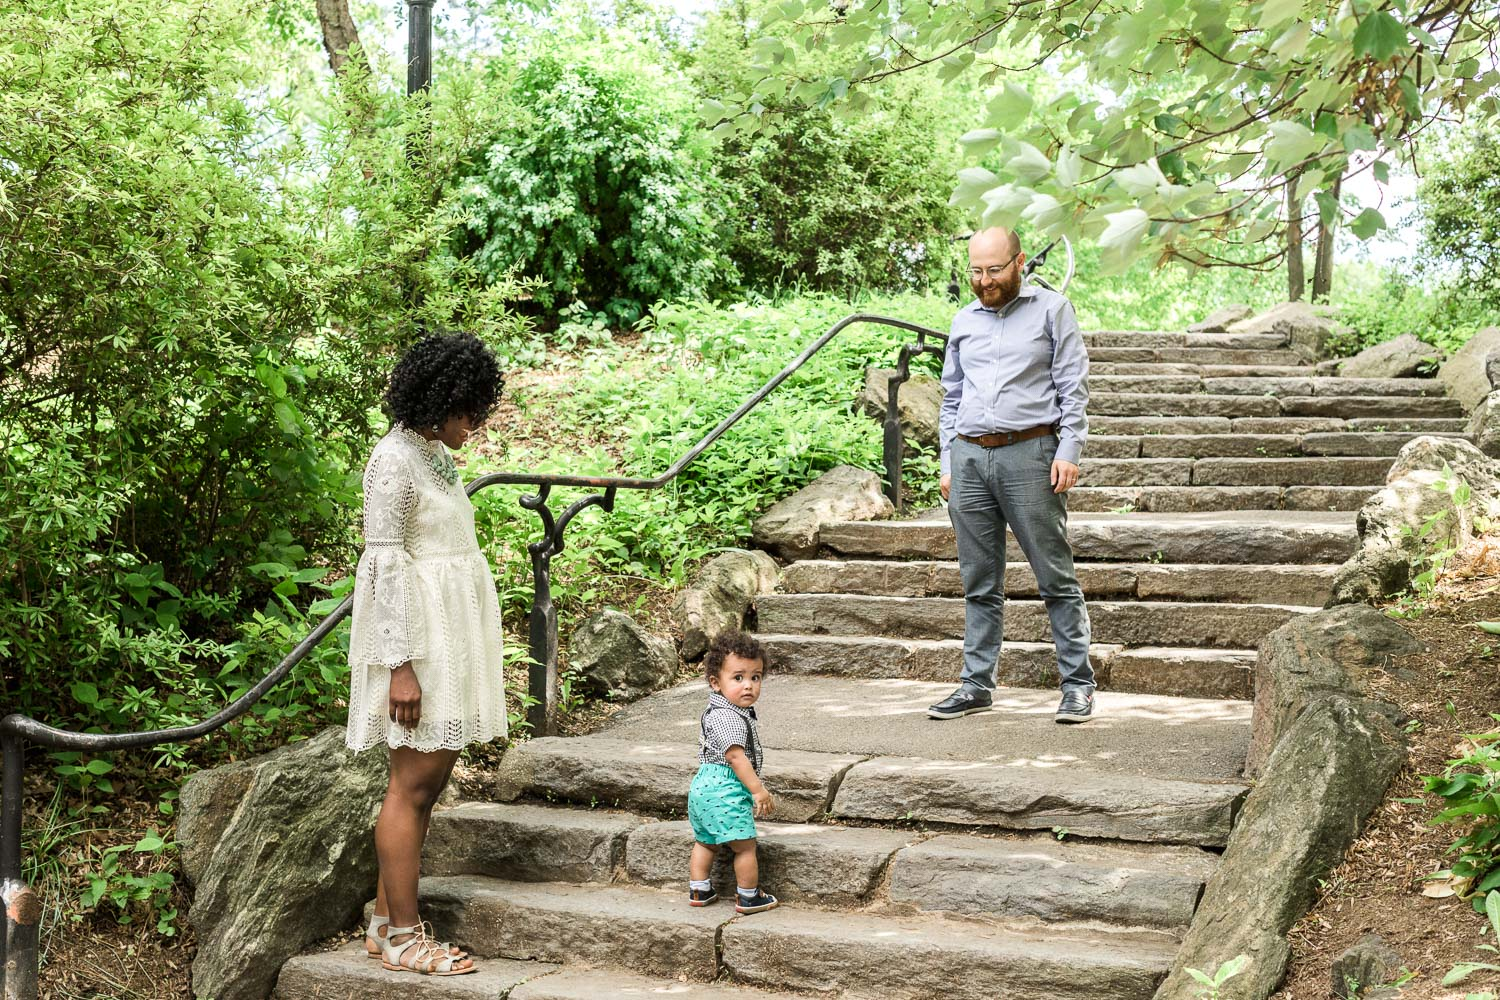 Central_Park_Family_Photographer_NYC_UWS_FIrst_Birthday_Nicole_Hawkins_Photography_2019-7.jpg